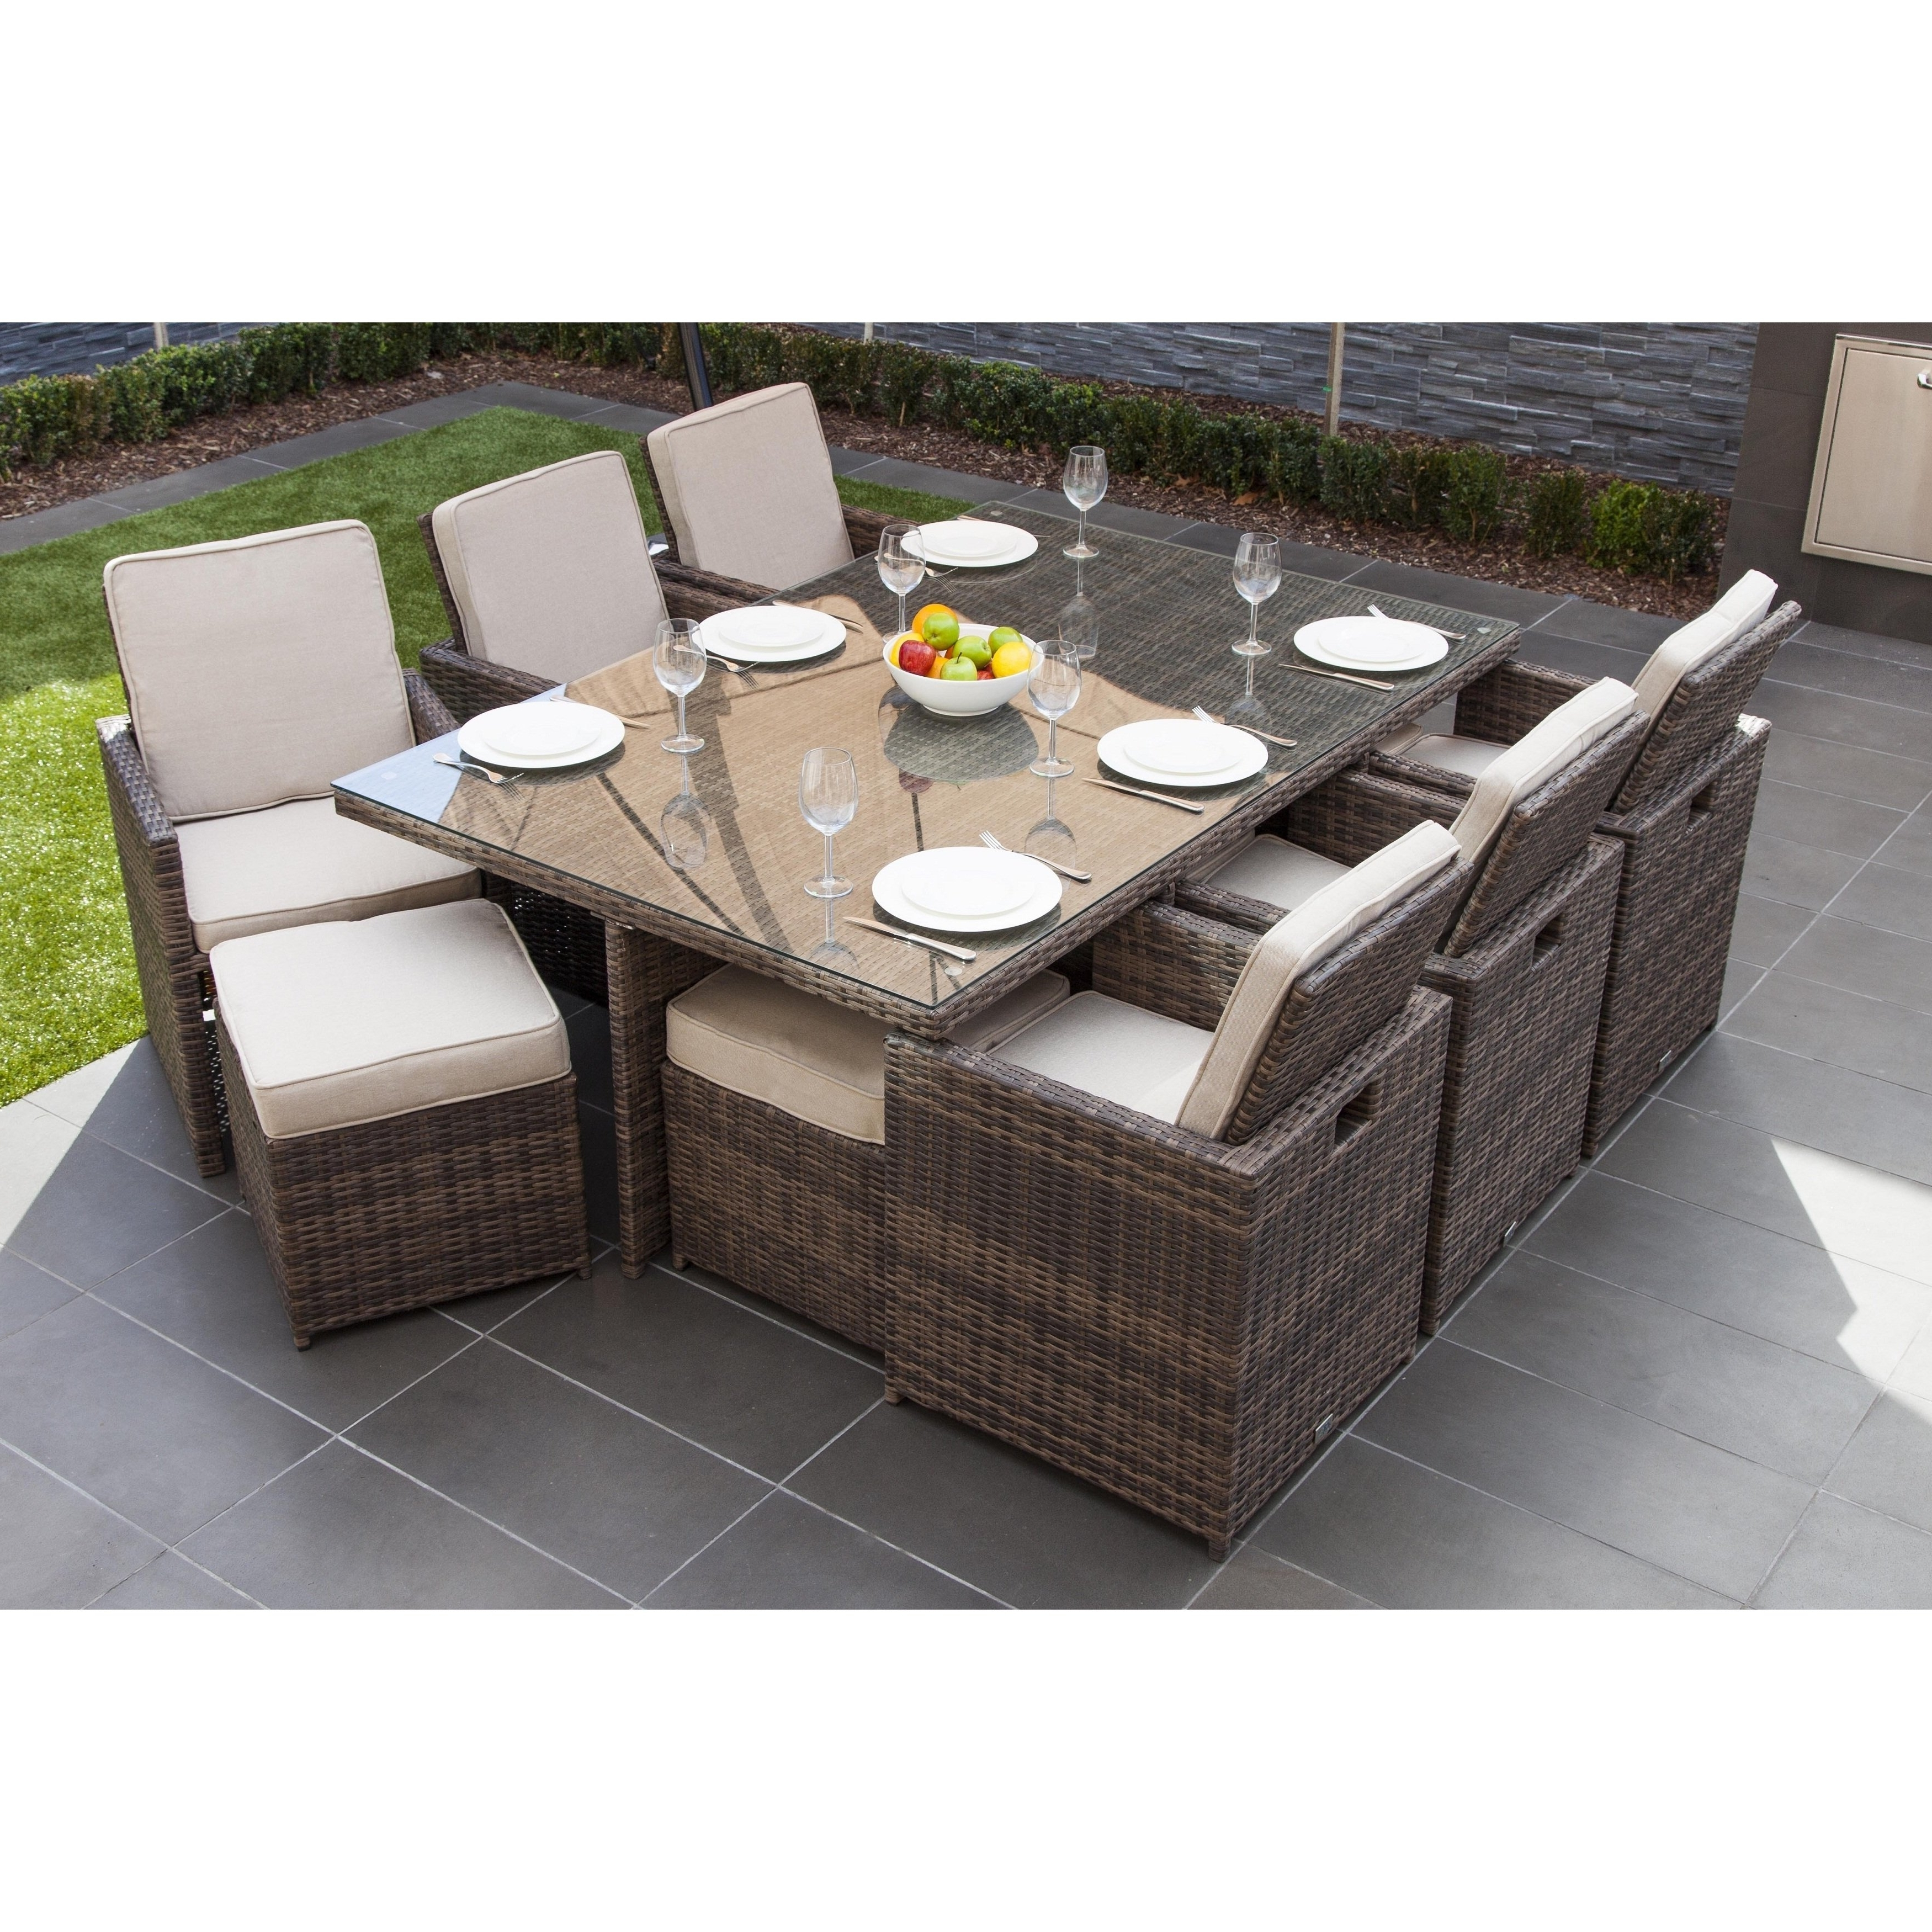 Shop Malta 11 Piece Outdoor Wicker Dining Table And Cushion Set Throughout Best And Newest Rattan Dining Tables And Chairs (View 13 of 25)